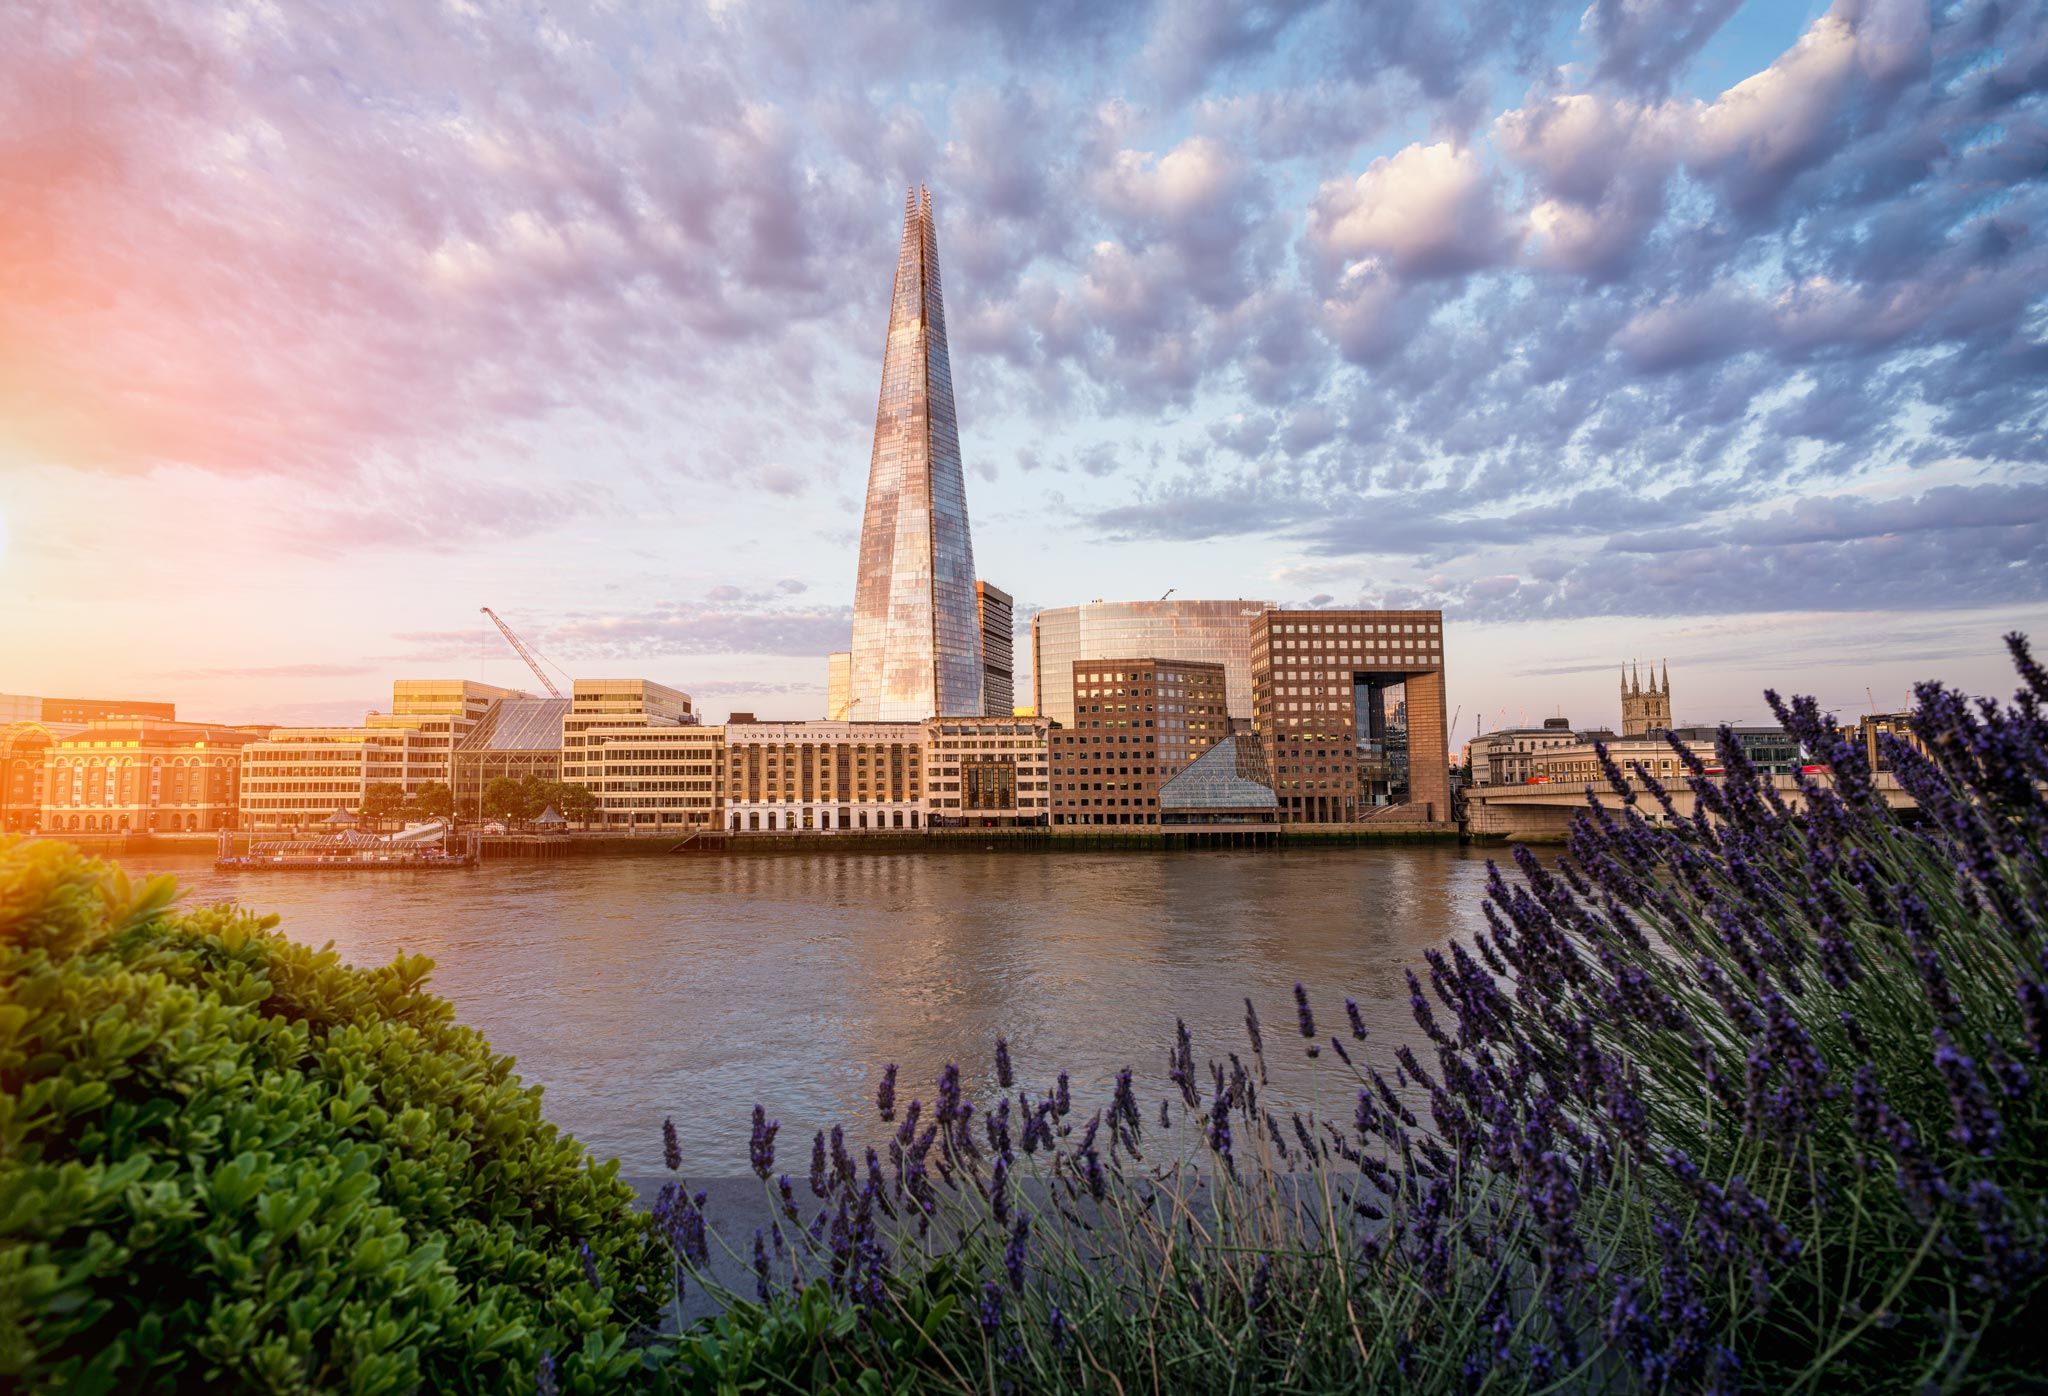 THE SHARD - LONDON - Architecture photography BY IMMERSED 360